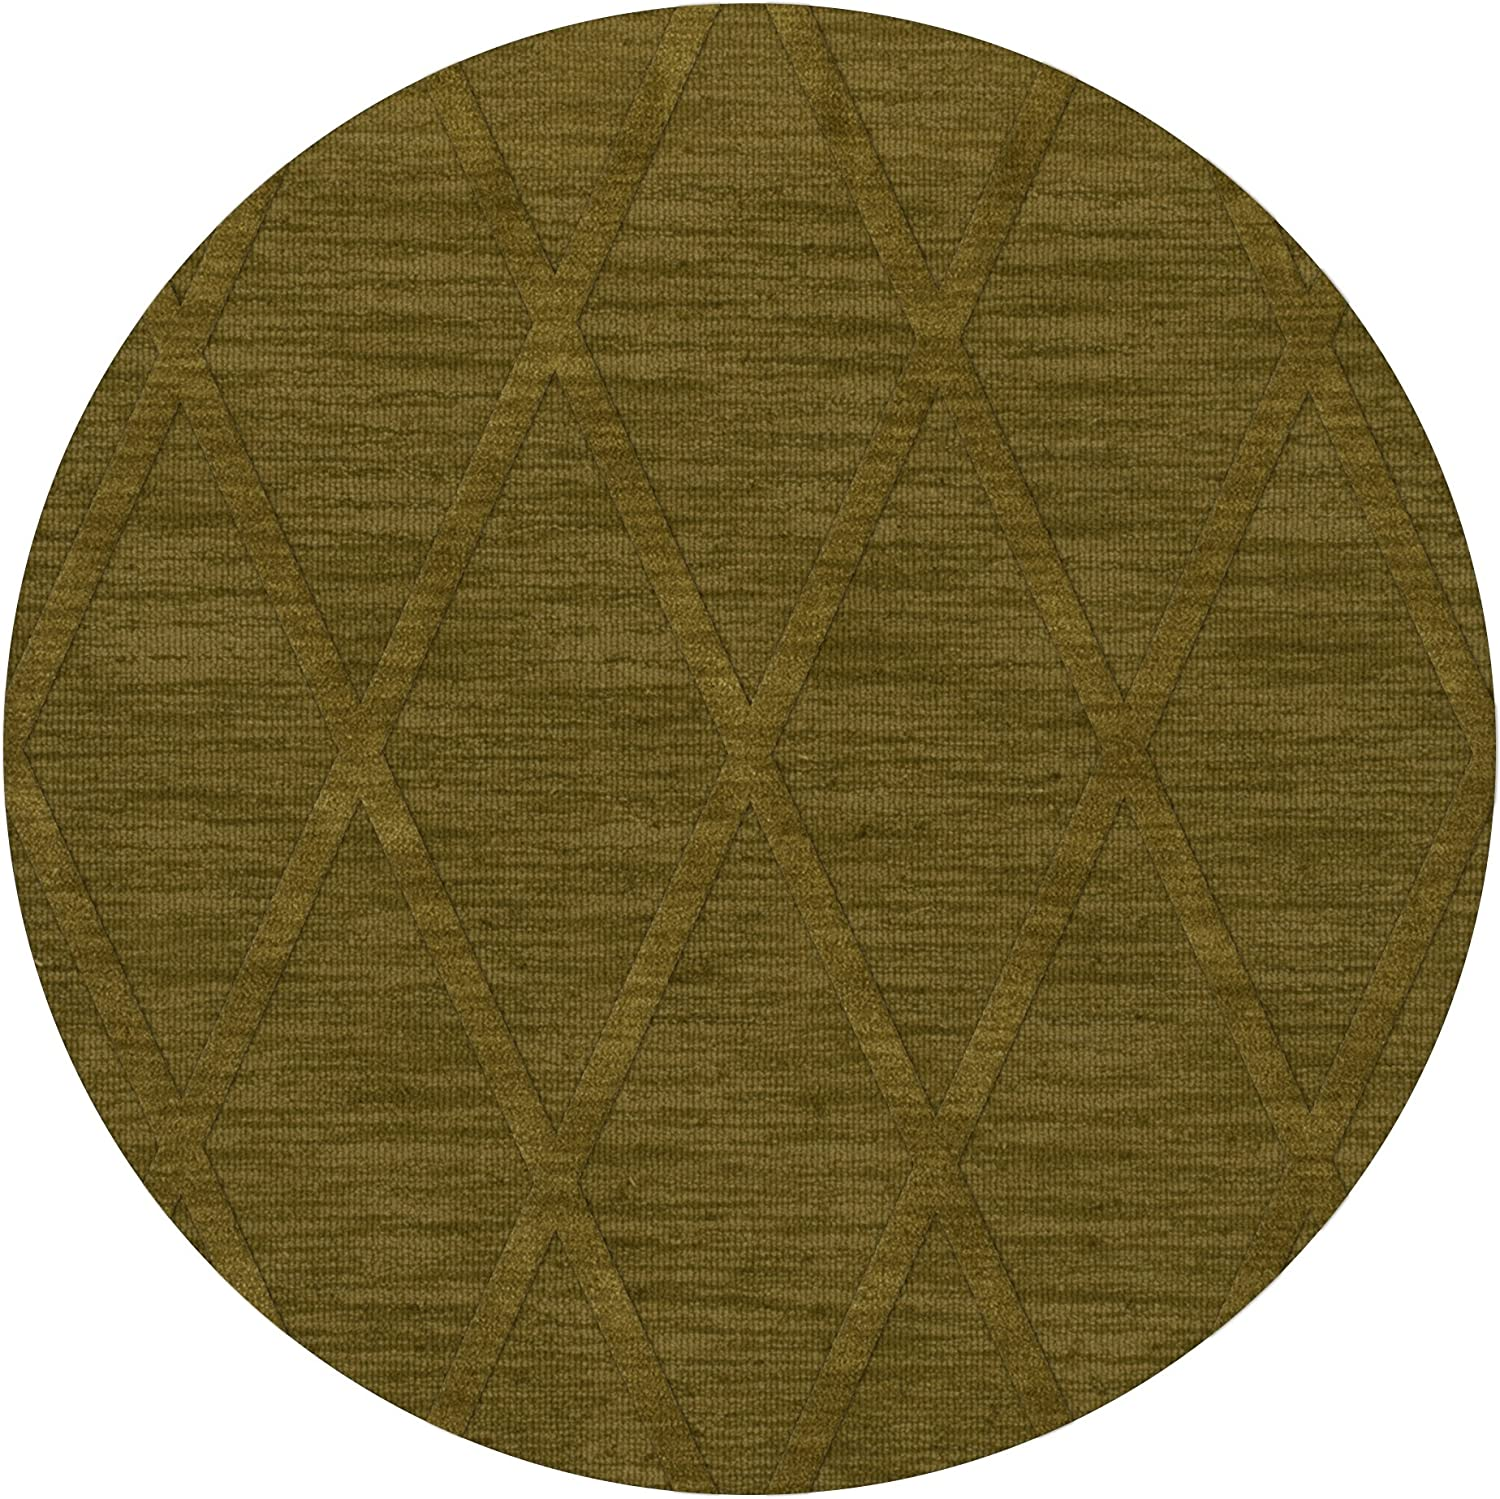 Dalyn Rugs Dover DV11 Tampa Mall Avocado Round 12' Rug Max 52% OFF